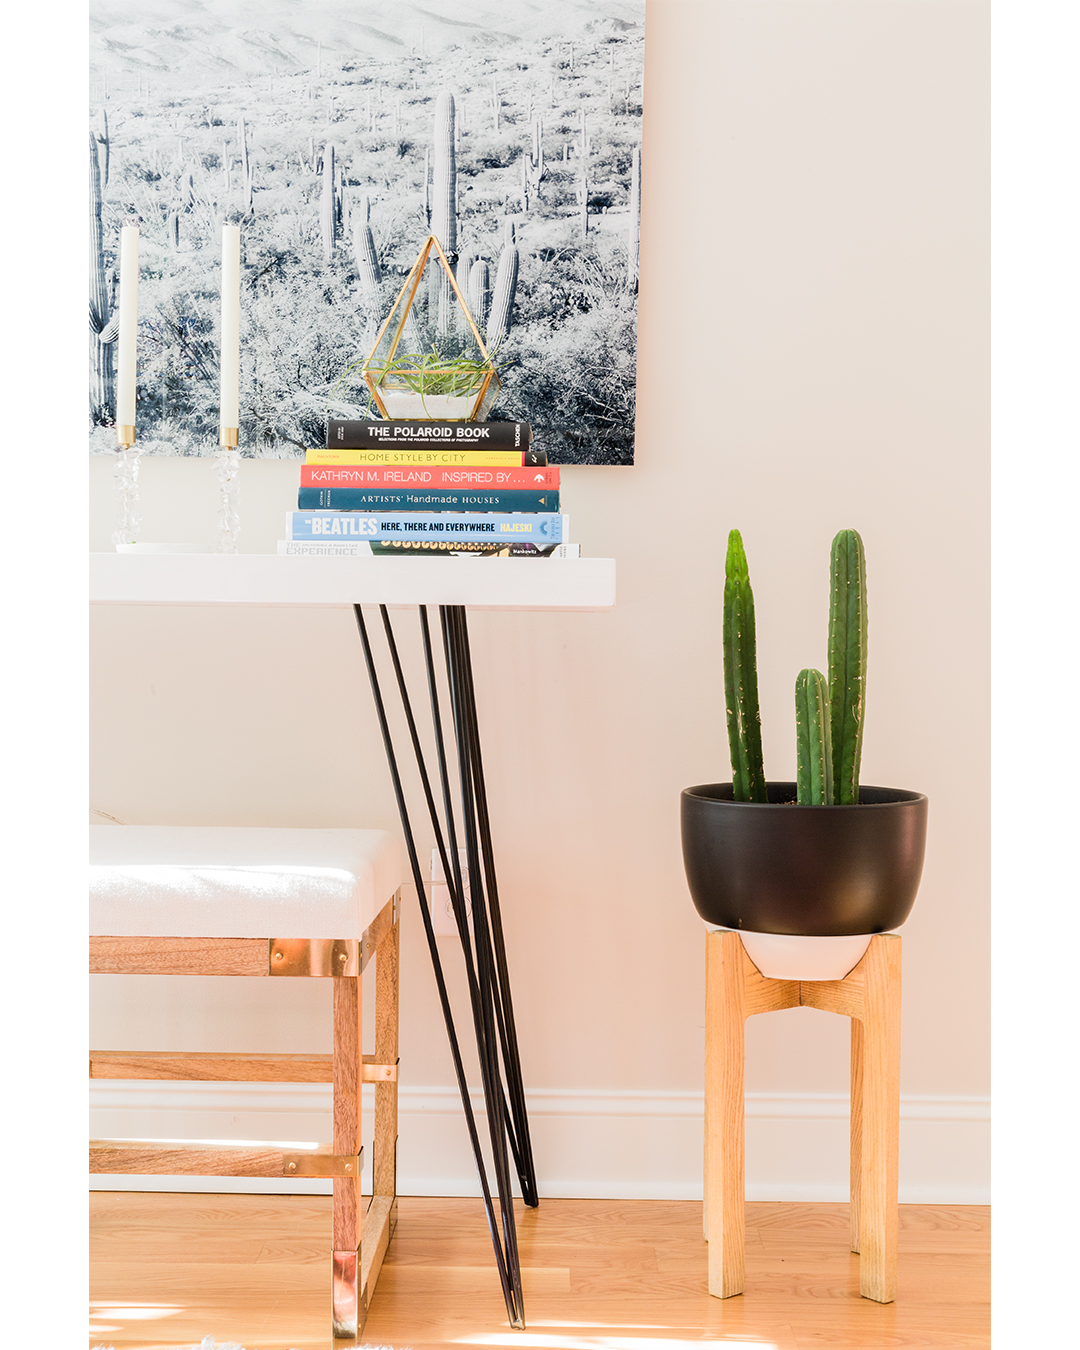 I love how Lauren has incorporated plants into the vignettes throughout her home. They really are an inexpensive element that adds a lot of character.